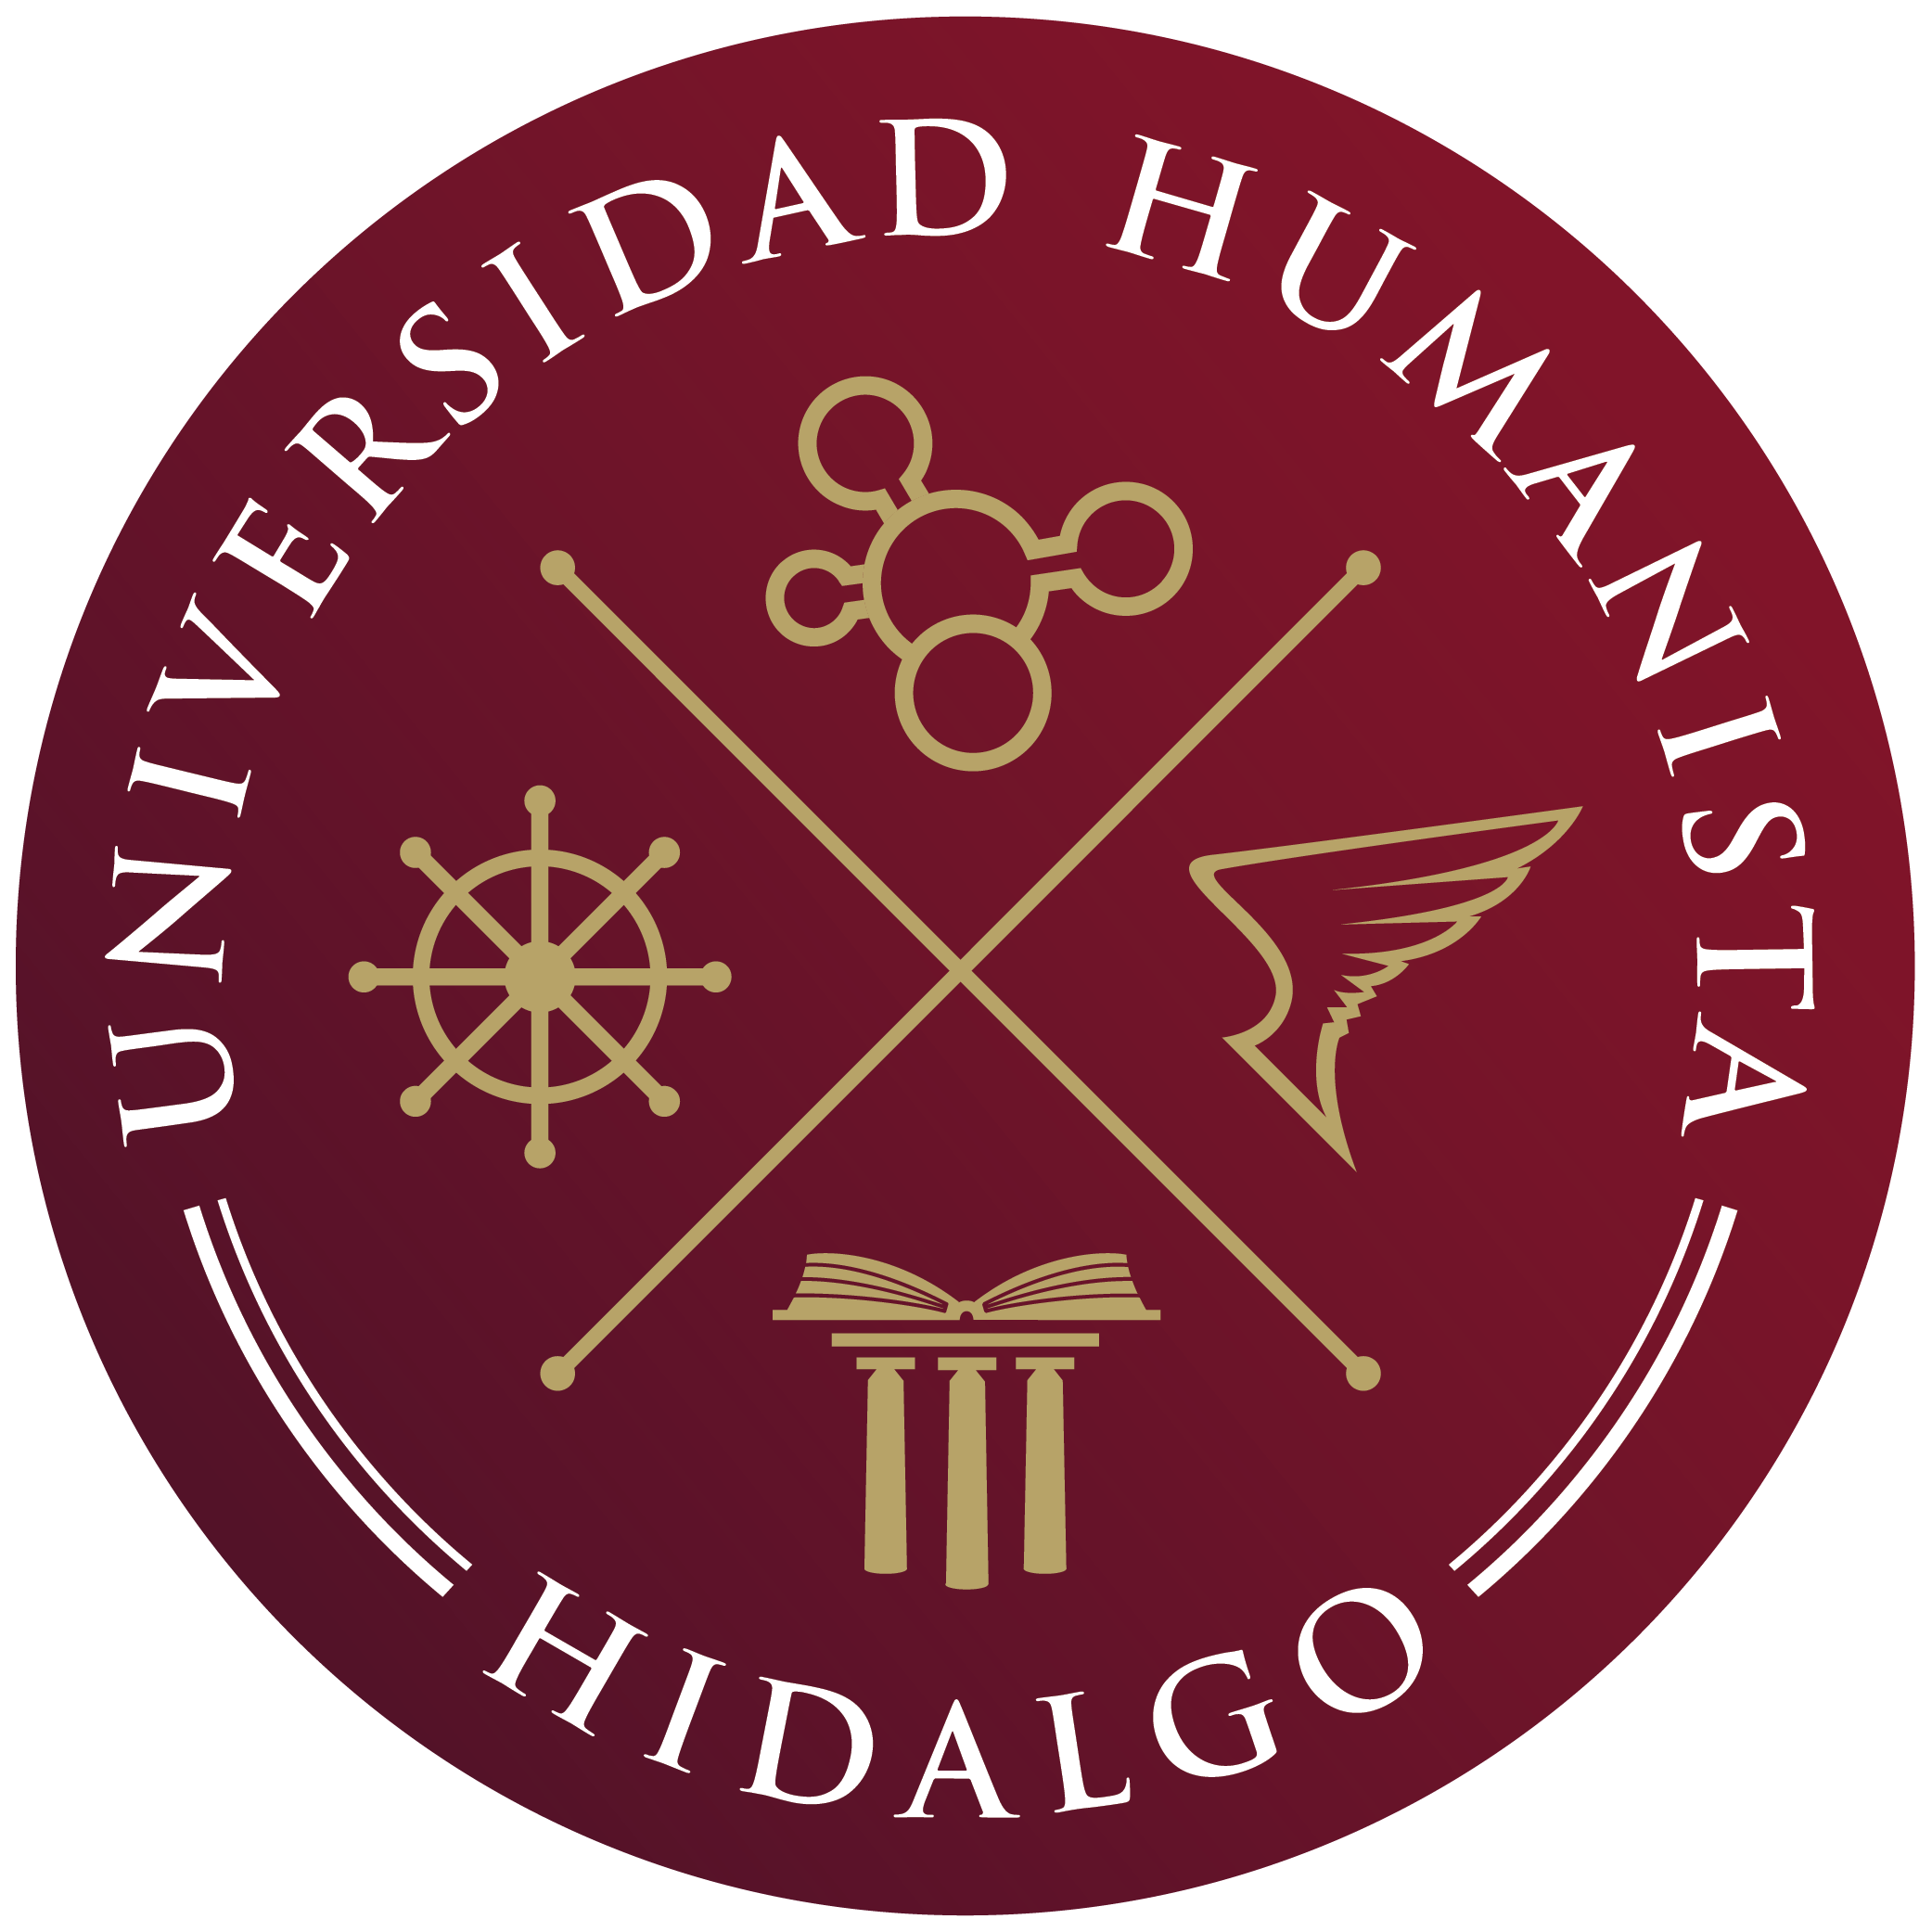 Universidas Humanista de Hidalgo